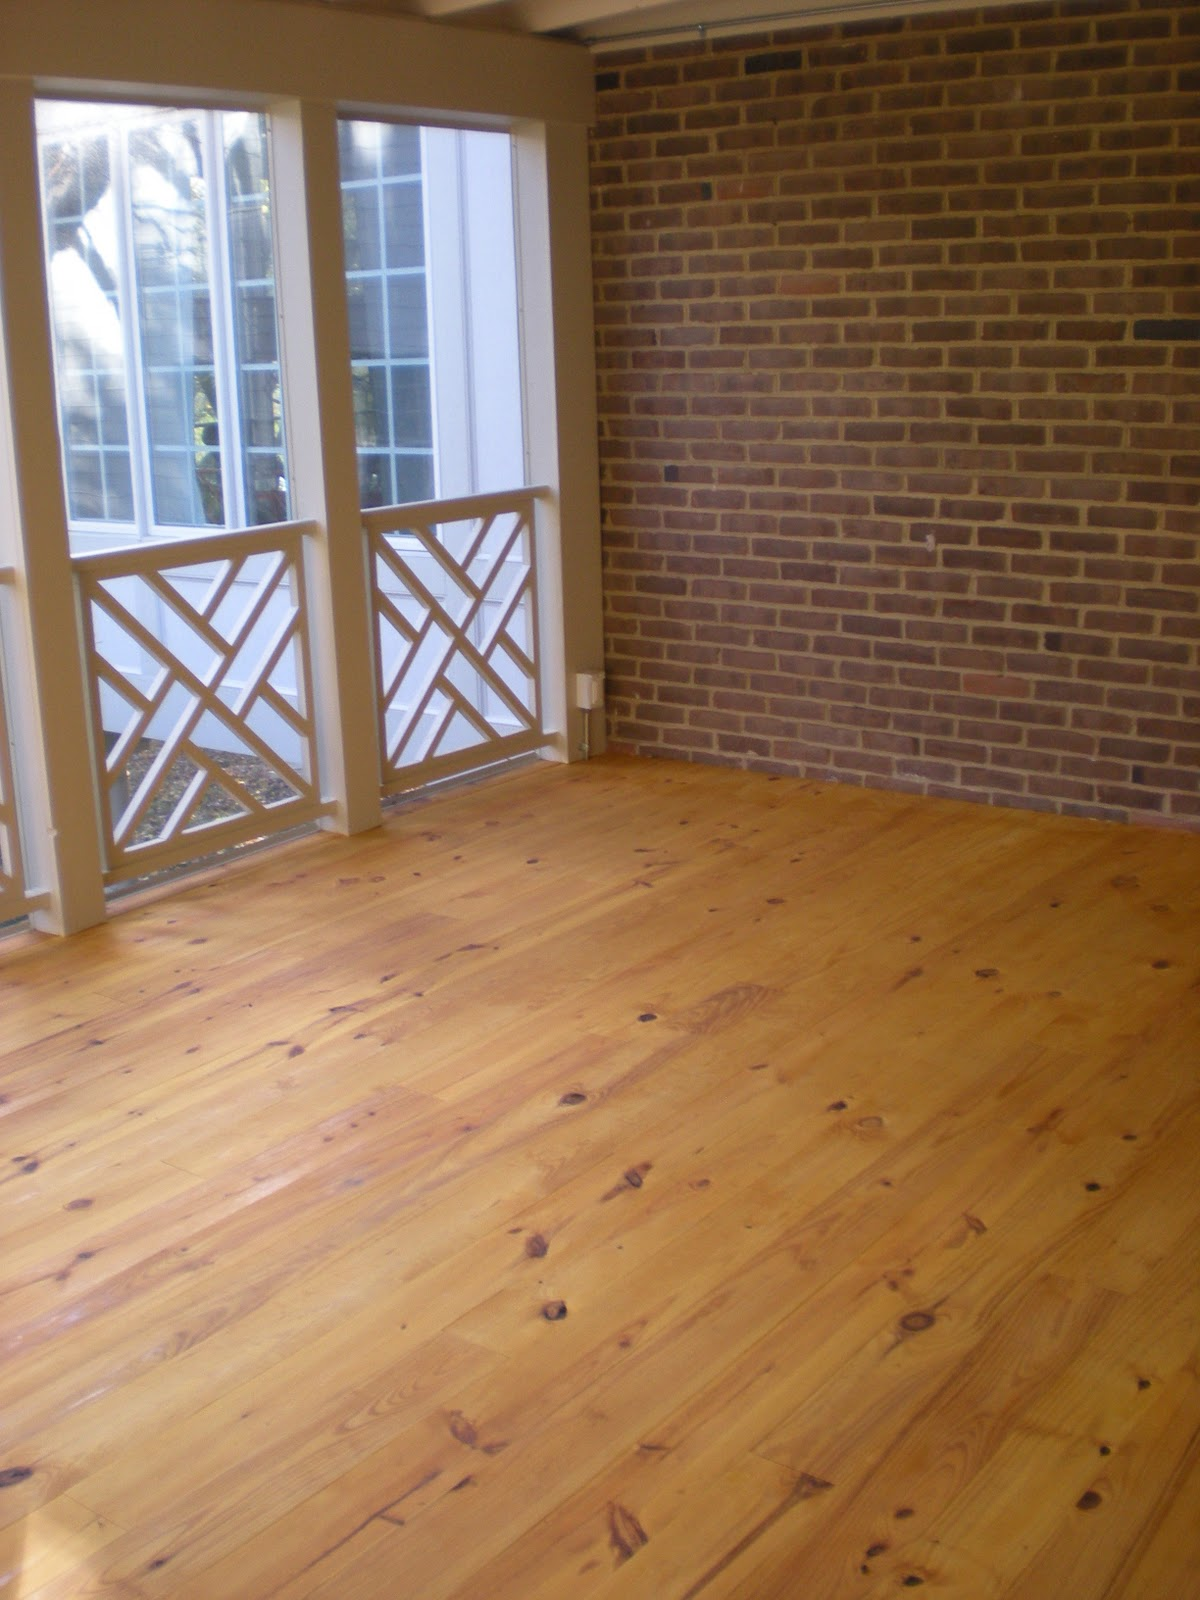 All about vignettes the screened porch redo - Exterior painting in cold weather ...